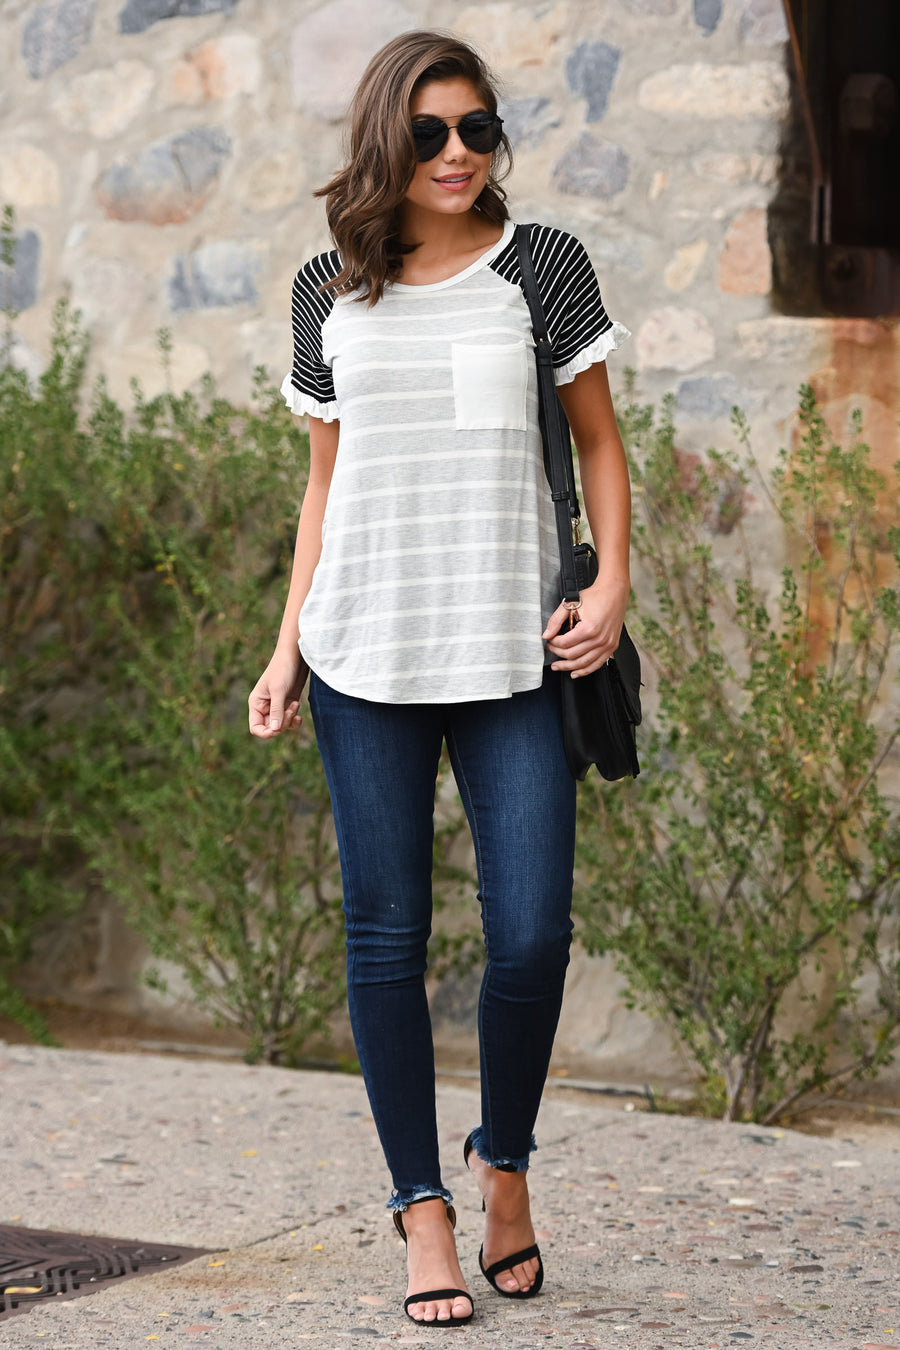 Dream Team Striped Top - Heather Grey & black women's tee with ruffle sleeves & chest pocket, Closet Candy Boutique 1